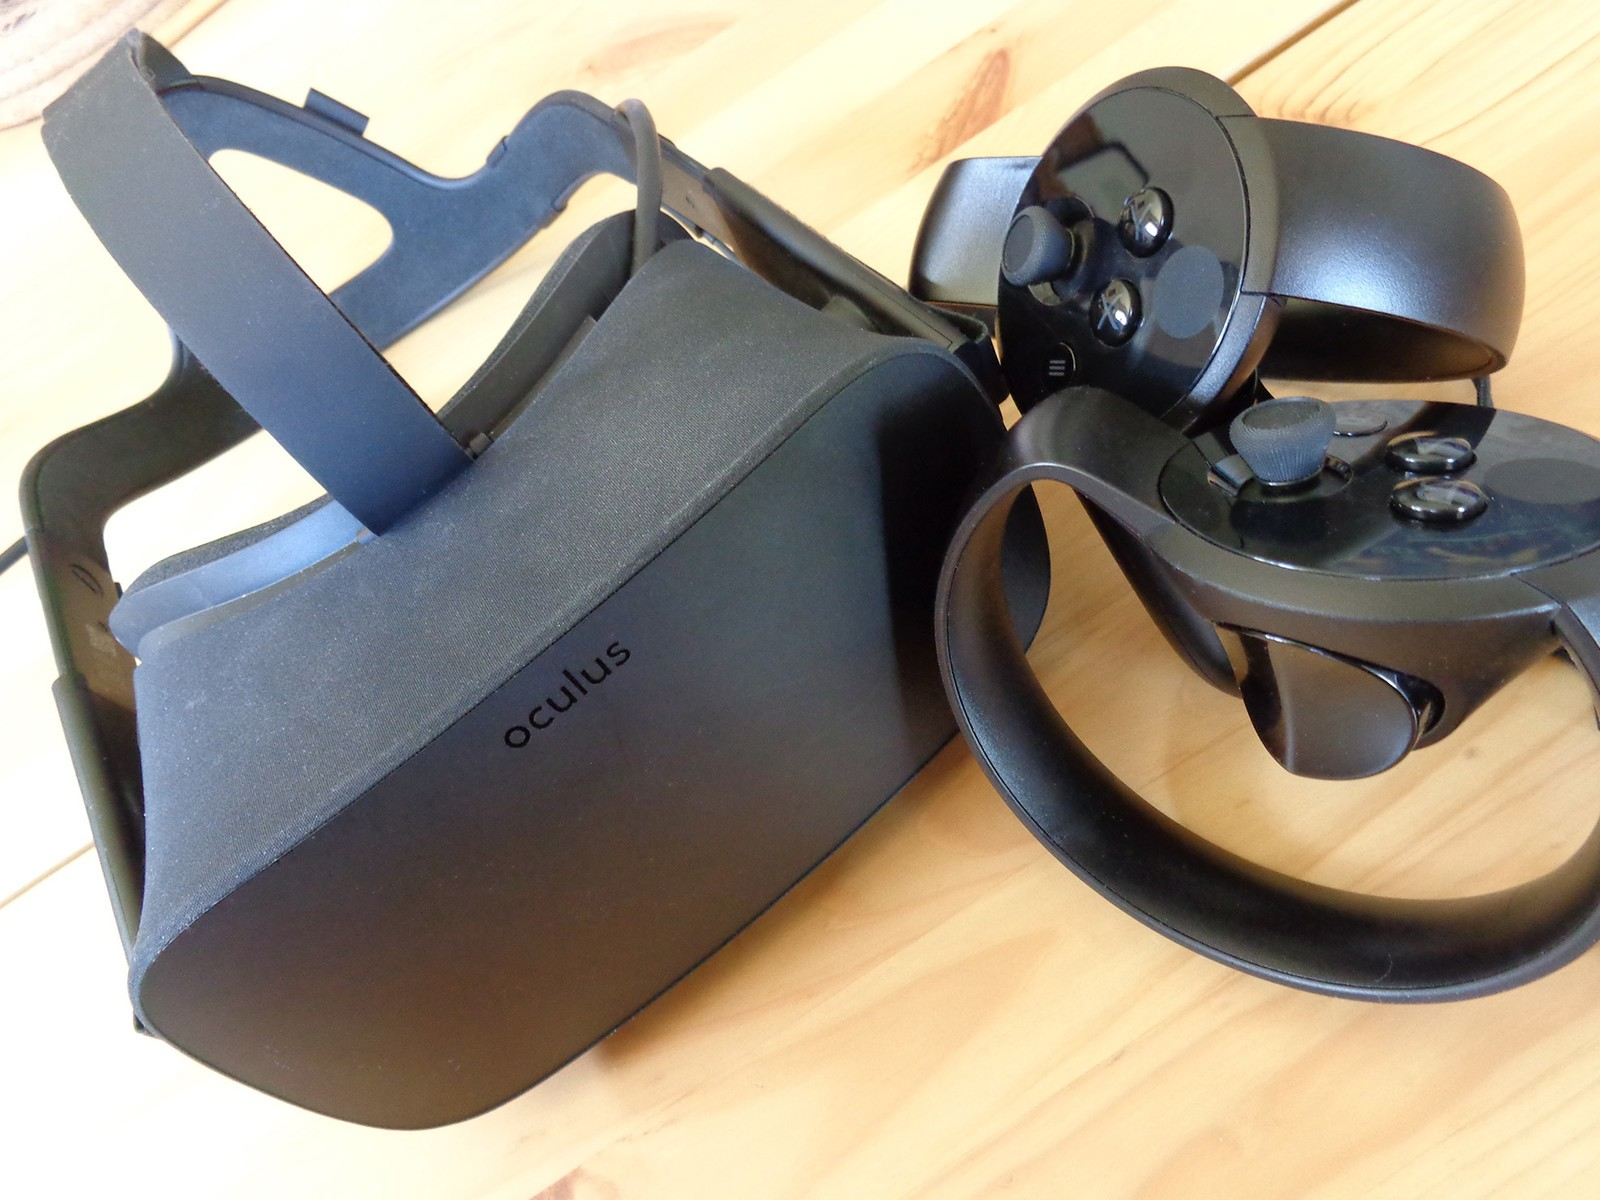 How to fix Windows 10 not detecting your Oculus Rift